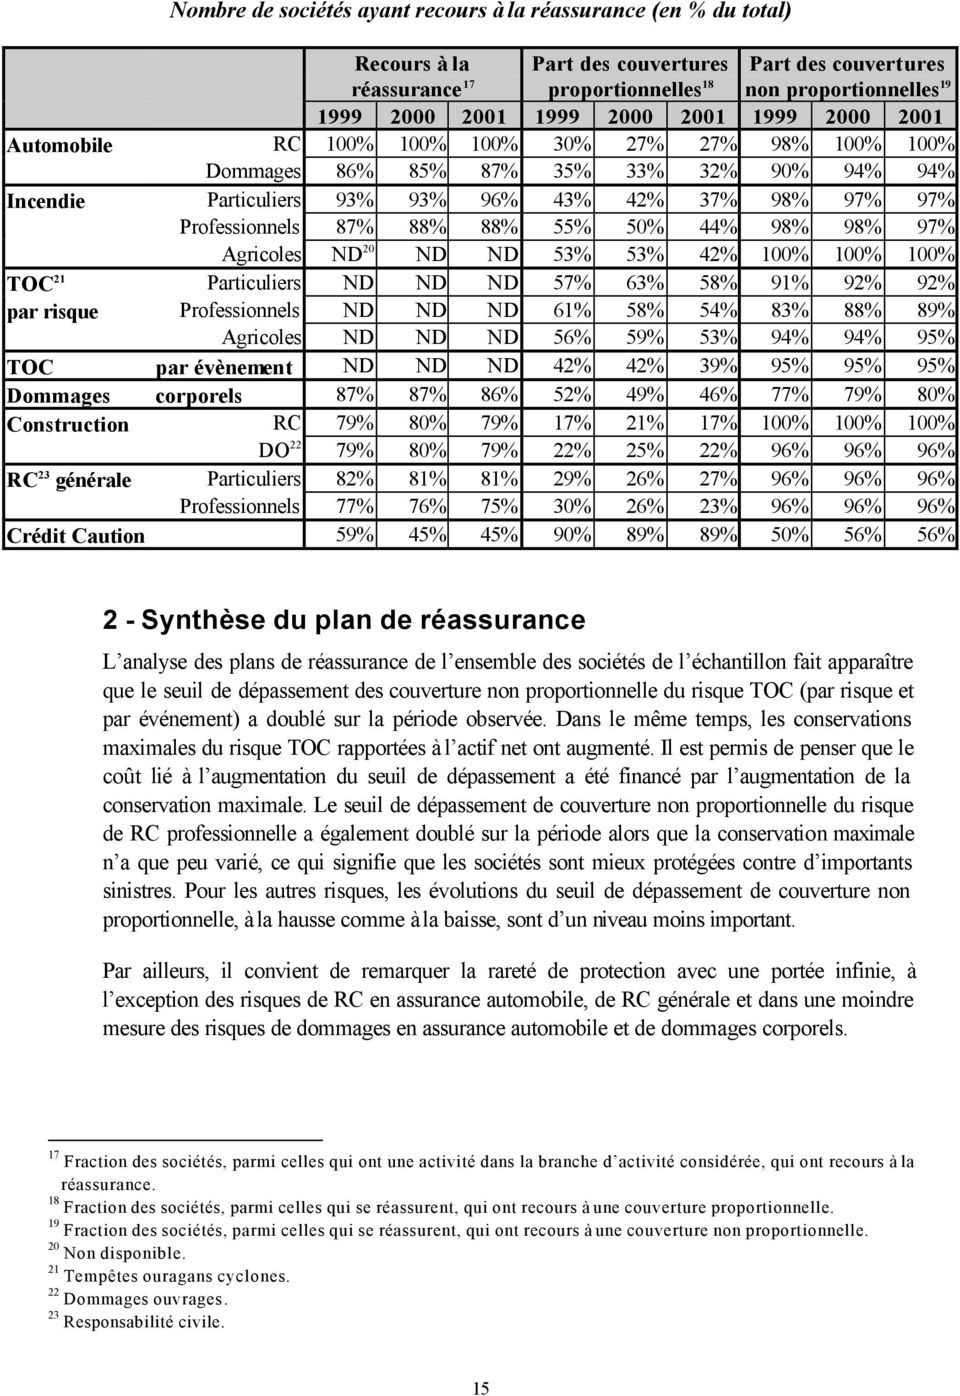 ND 20 ND ND 53% 53% 42% 100% 100% 100% TOC 21 Particuliers ND ND ND 57% 63% 58% 91% 92% 92% par risque Professionnels ND ND ND 61% 58% 54% 83% 88% 89% Agricoles ND ND ND 56% 59% 53% 94% 94% 95% TOC